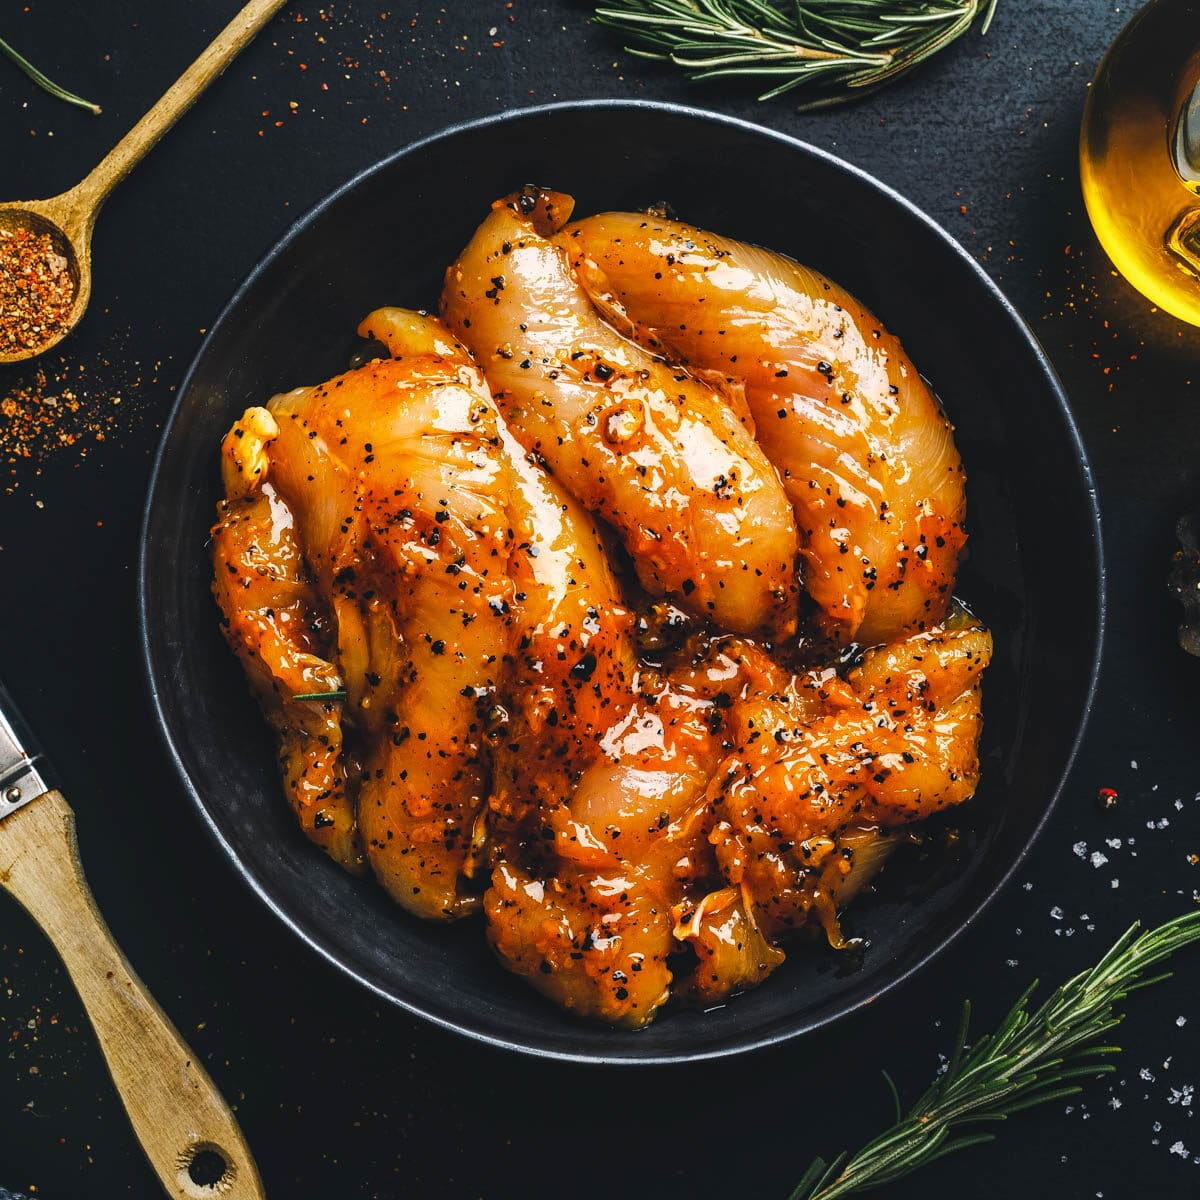 marinated chicken in a bowl